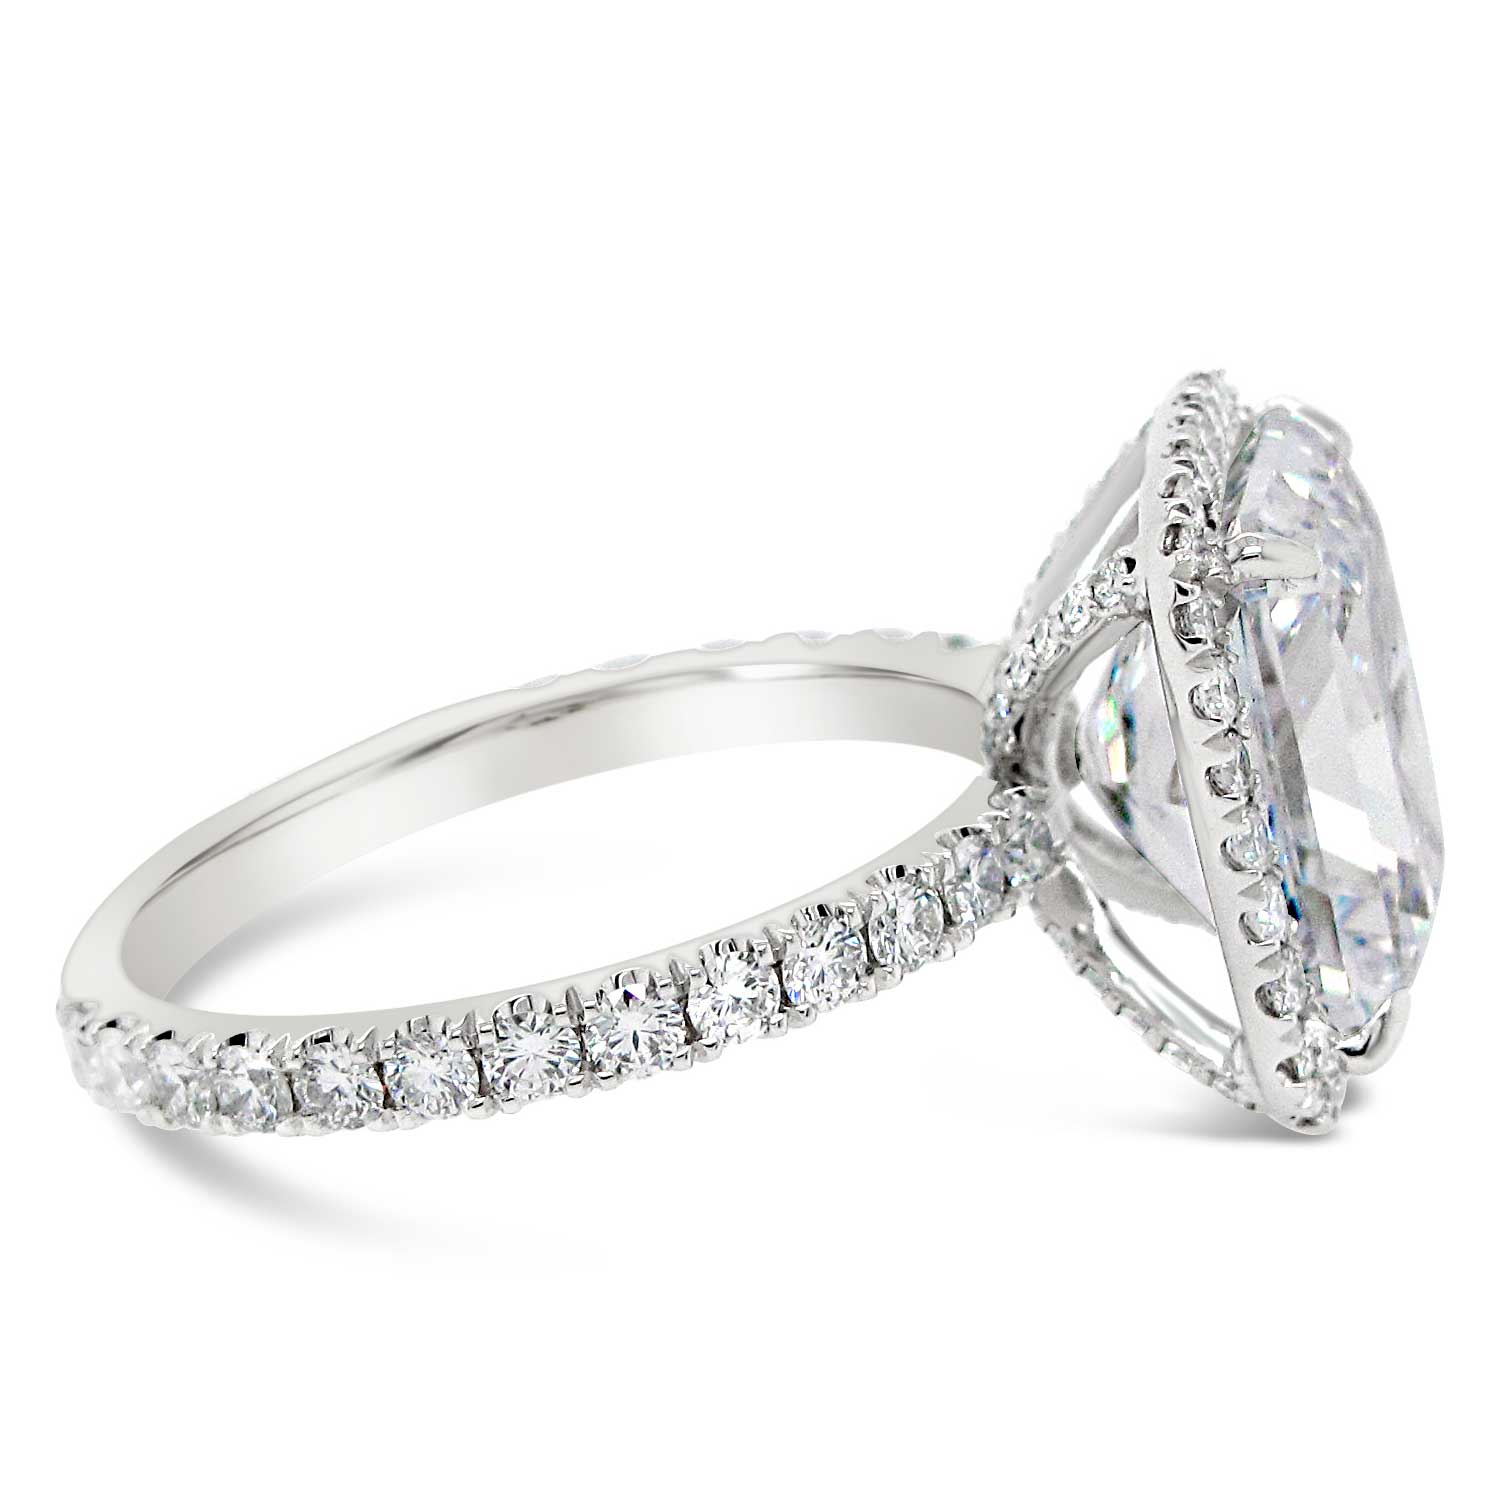 3.5ct radiant cut with diamond halo and shank